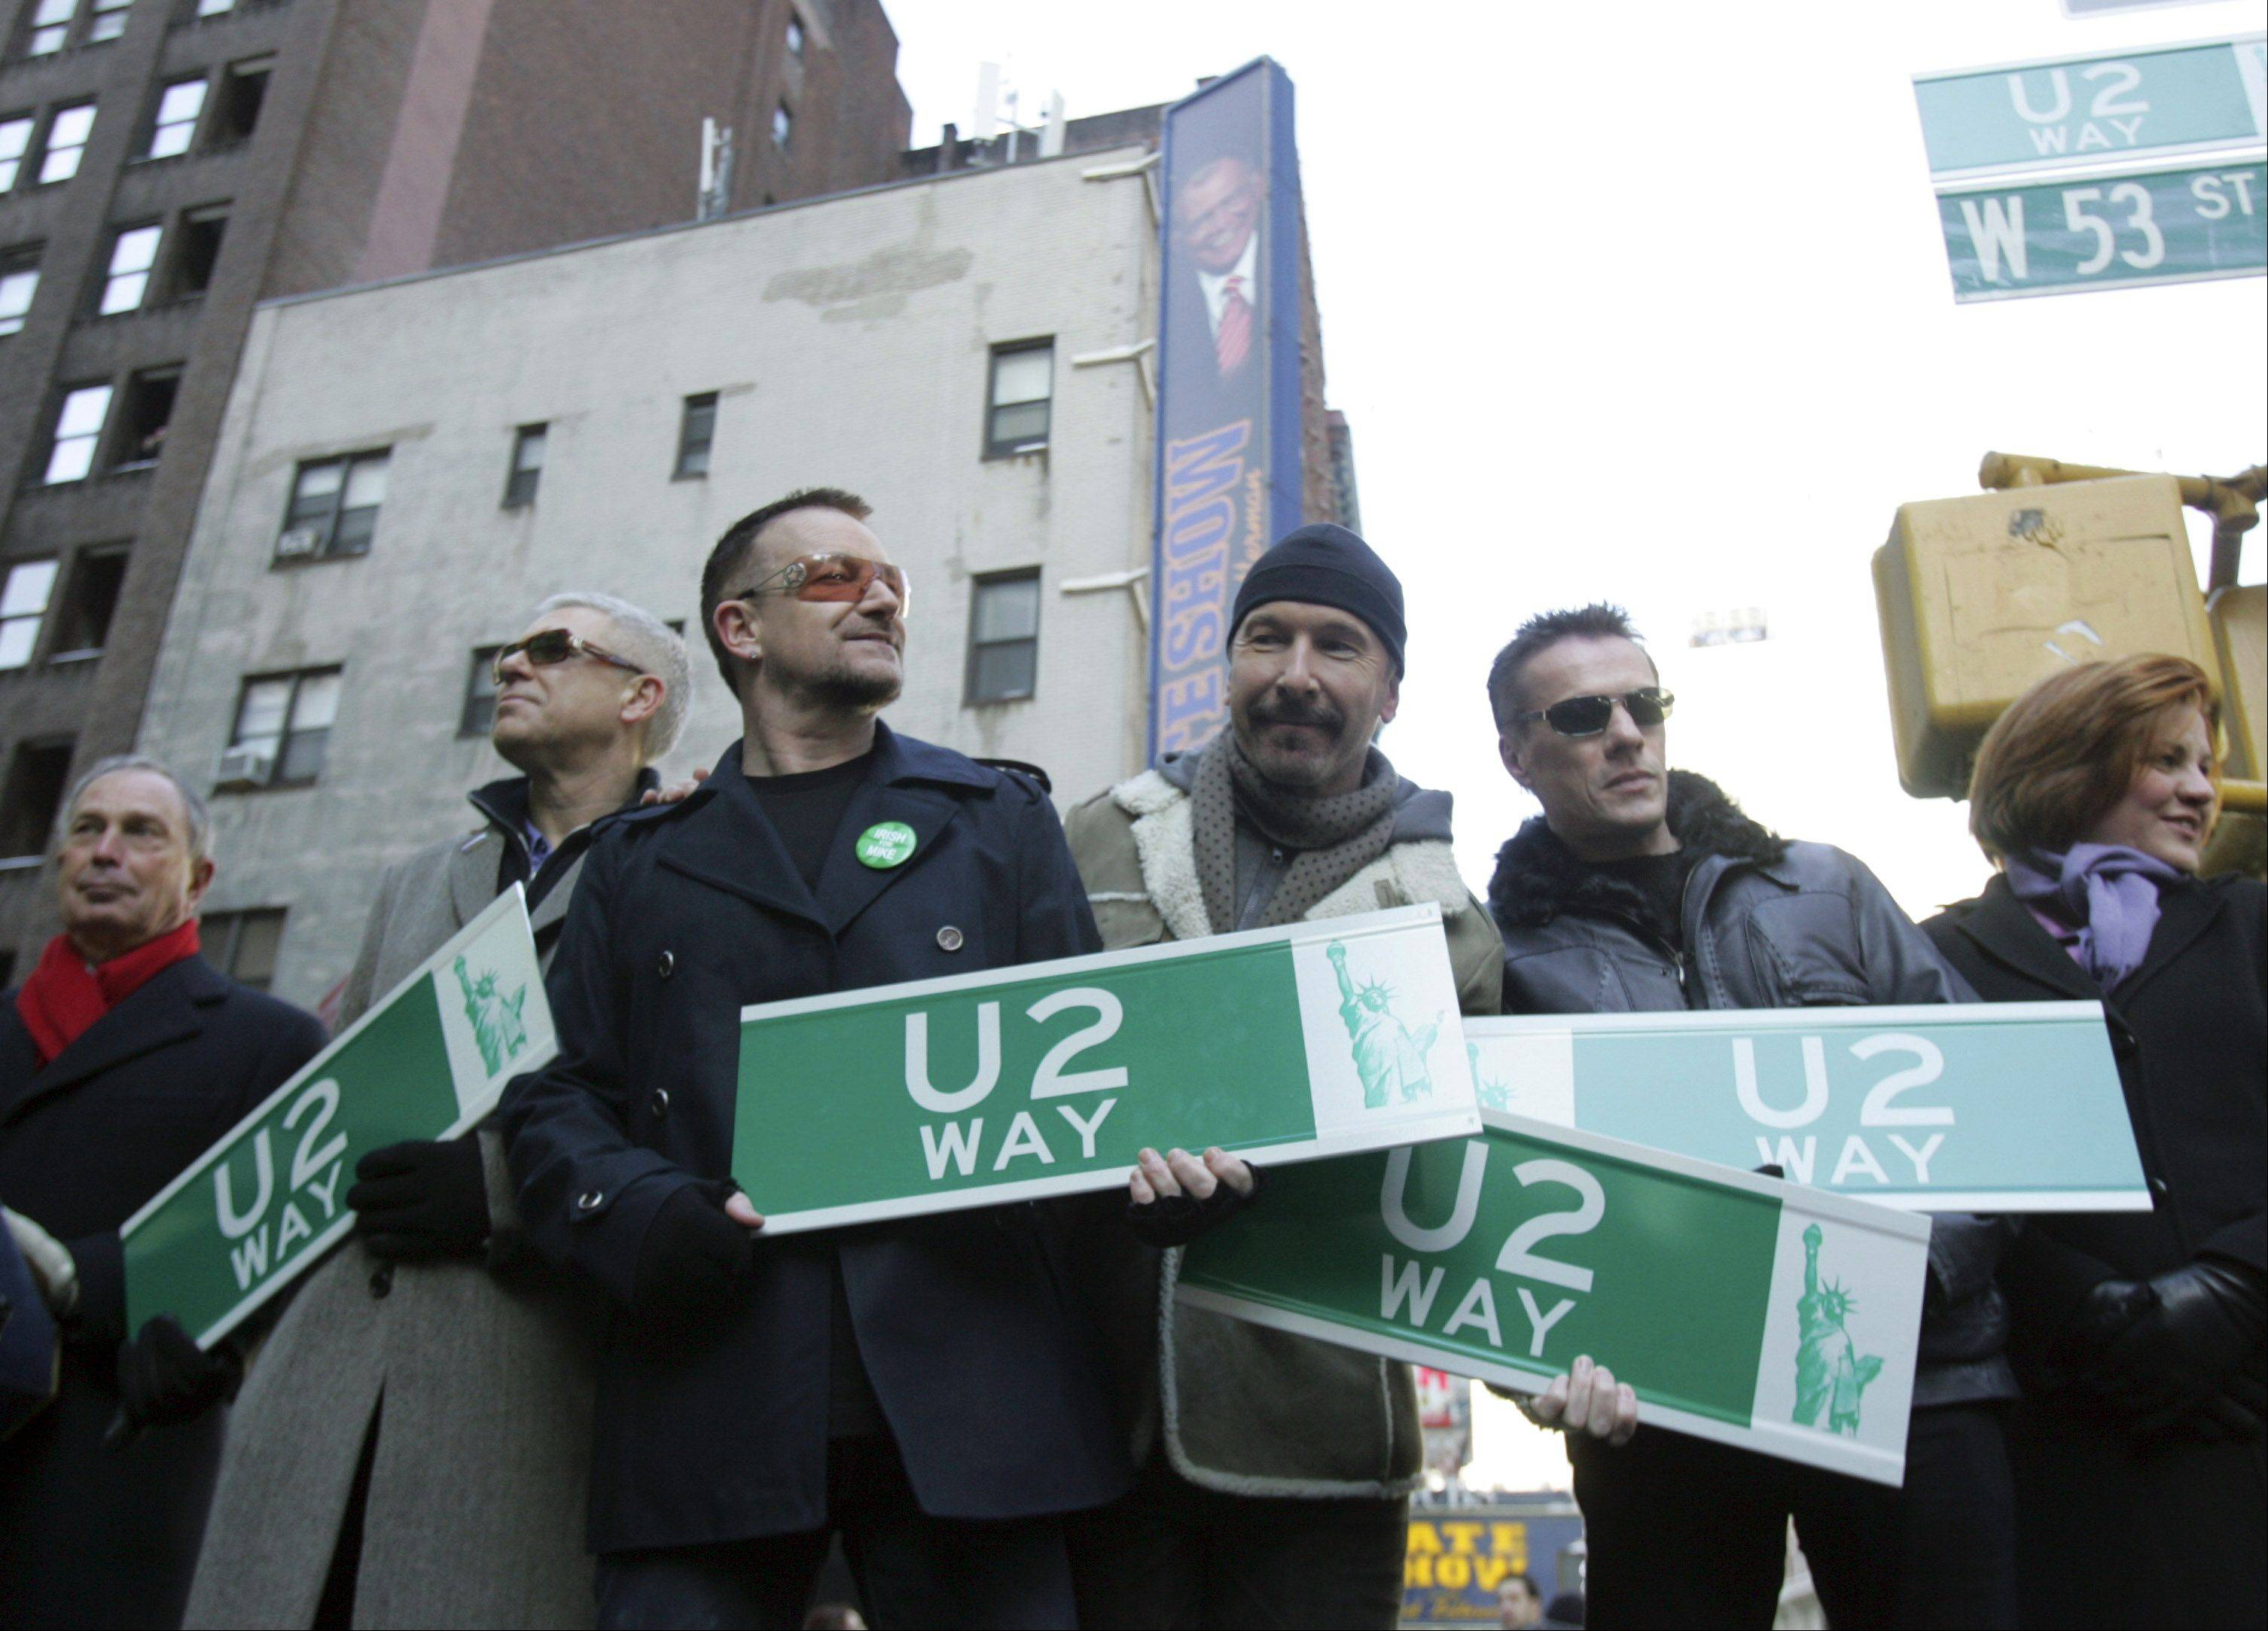 New York Mayor Michael Bloomberg, left, and New York Council Speaker Christine Quin, right, are joined by members of the band U2, from second left, Adam Clayton, Bono, The Edge and Larry Mullen during a ceremony, Tuesday, March 3, 2009 in New York. A section of Manhattan's West 53rd Street was temporarily renamed after the veteran Irish rockers on Tuesday.